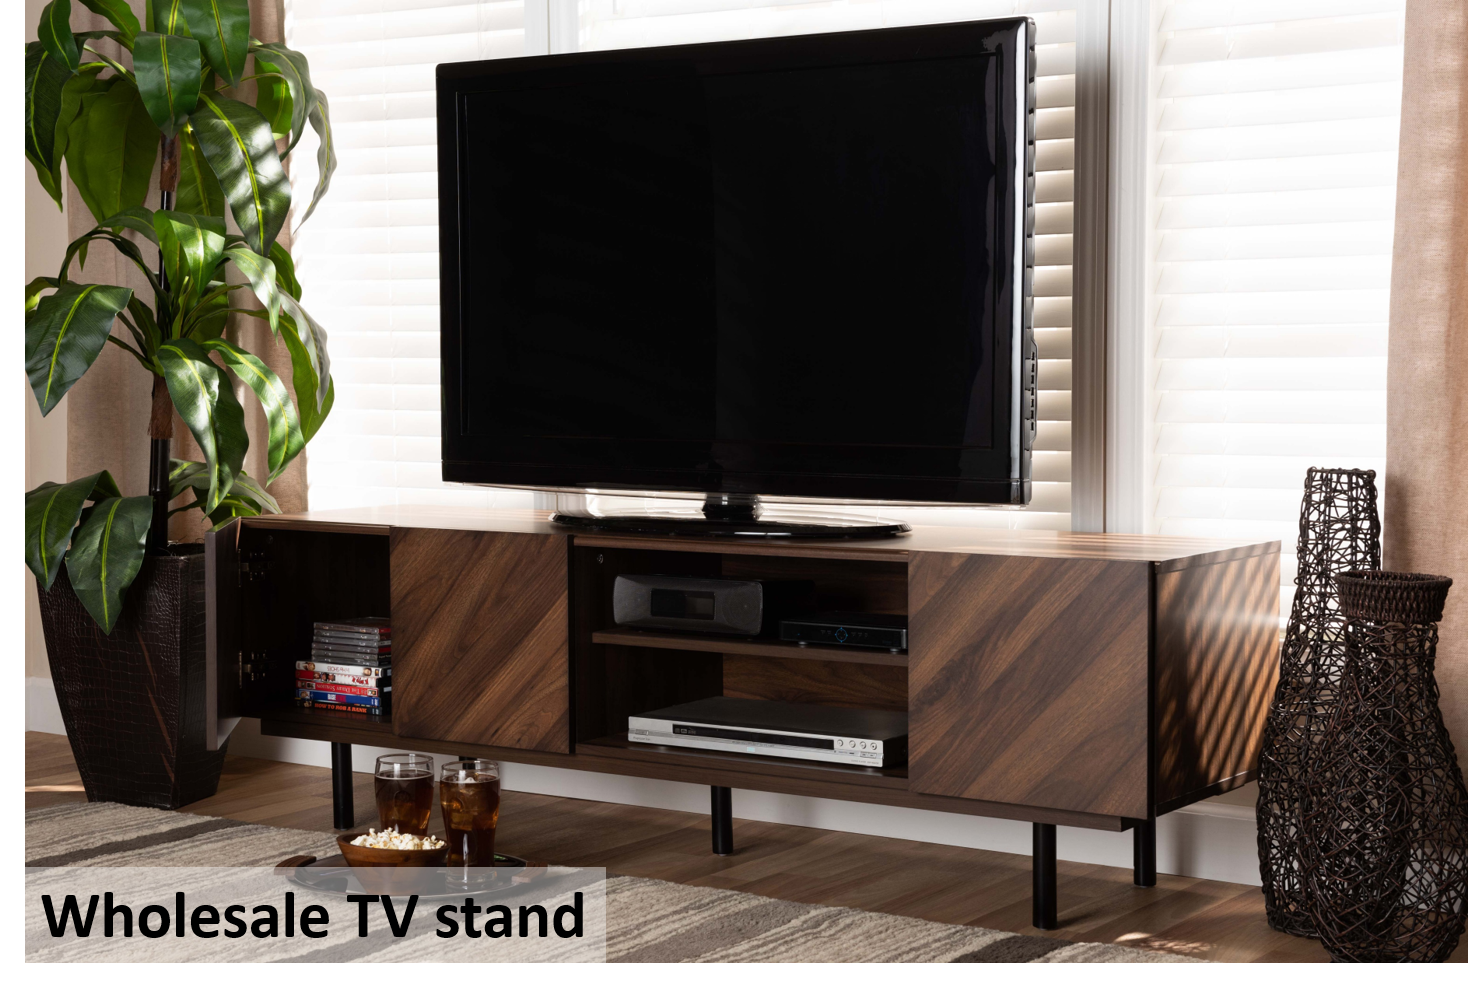 Wholesale TV stand